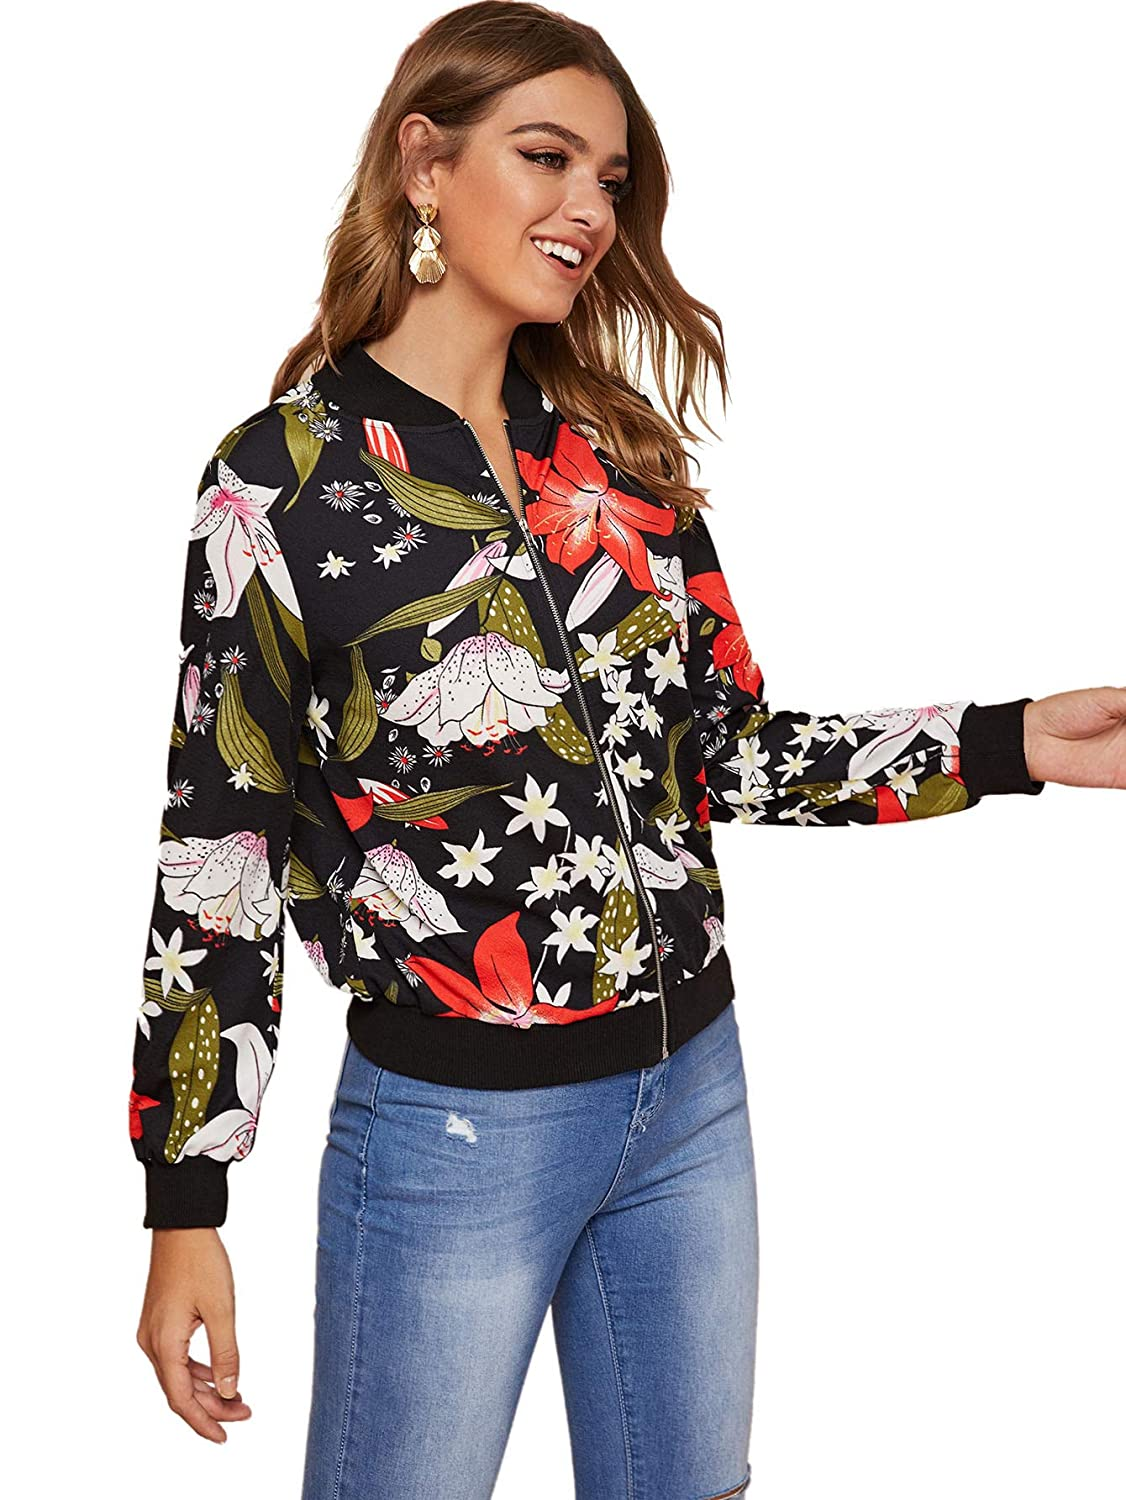 ROMWE Womens Casual Floral Print Zip Up Lightweight Bomber Jacket